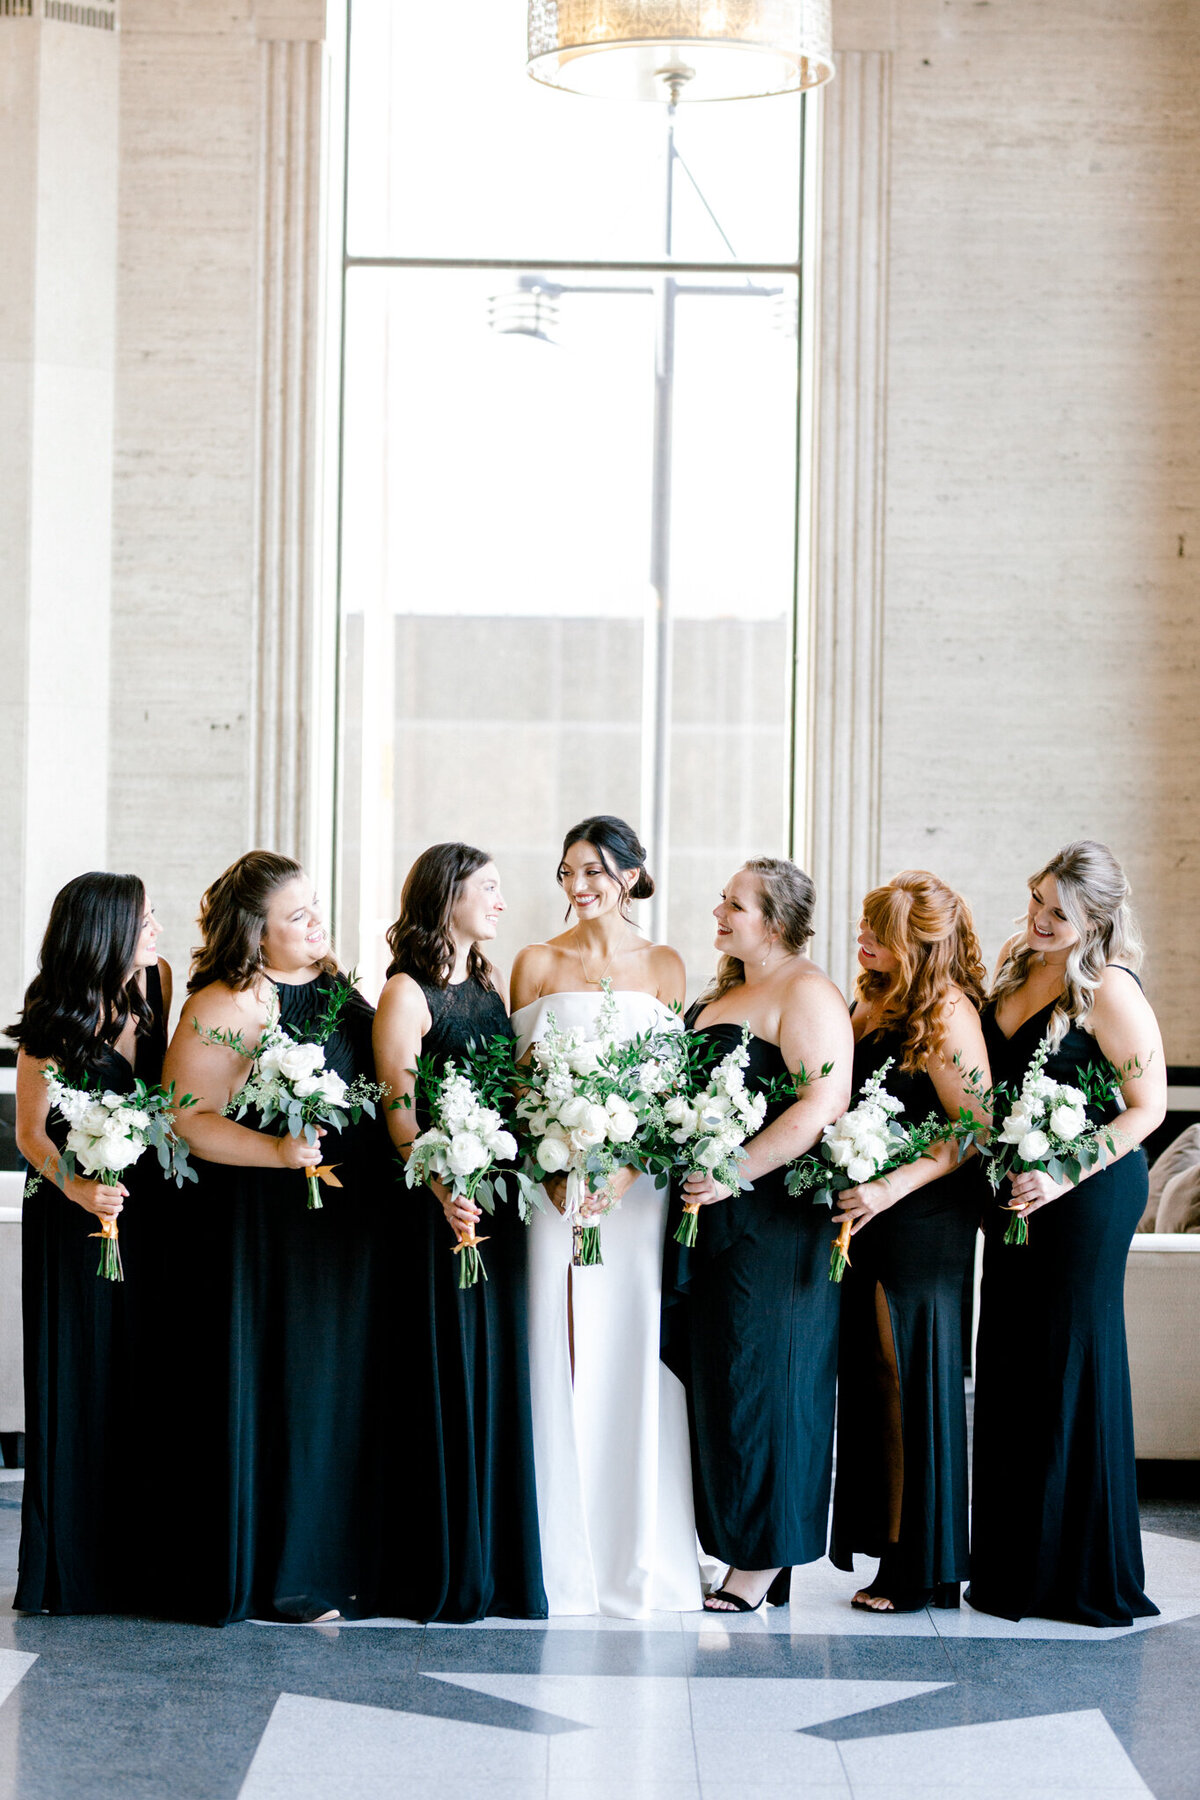 Hope & Zack's Wedding at the Carlisle Room | Dallas Wedding Photographer | Sami Kathryn Photography-41